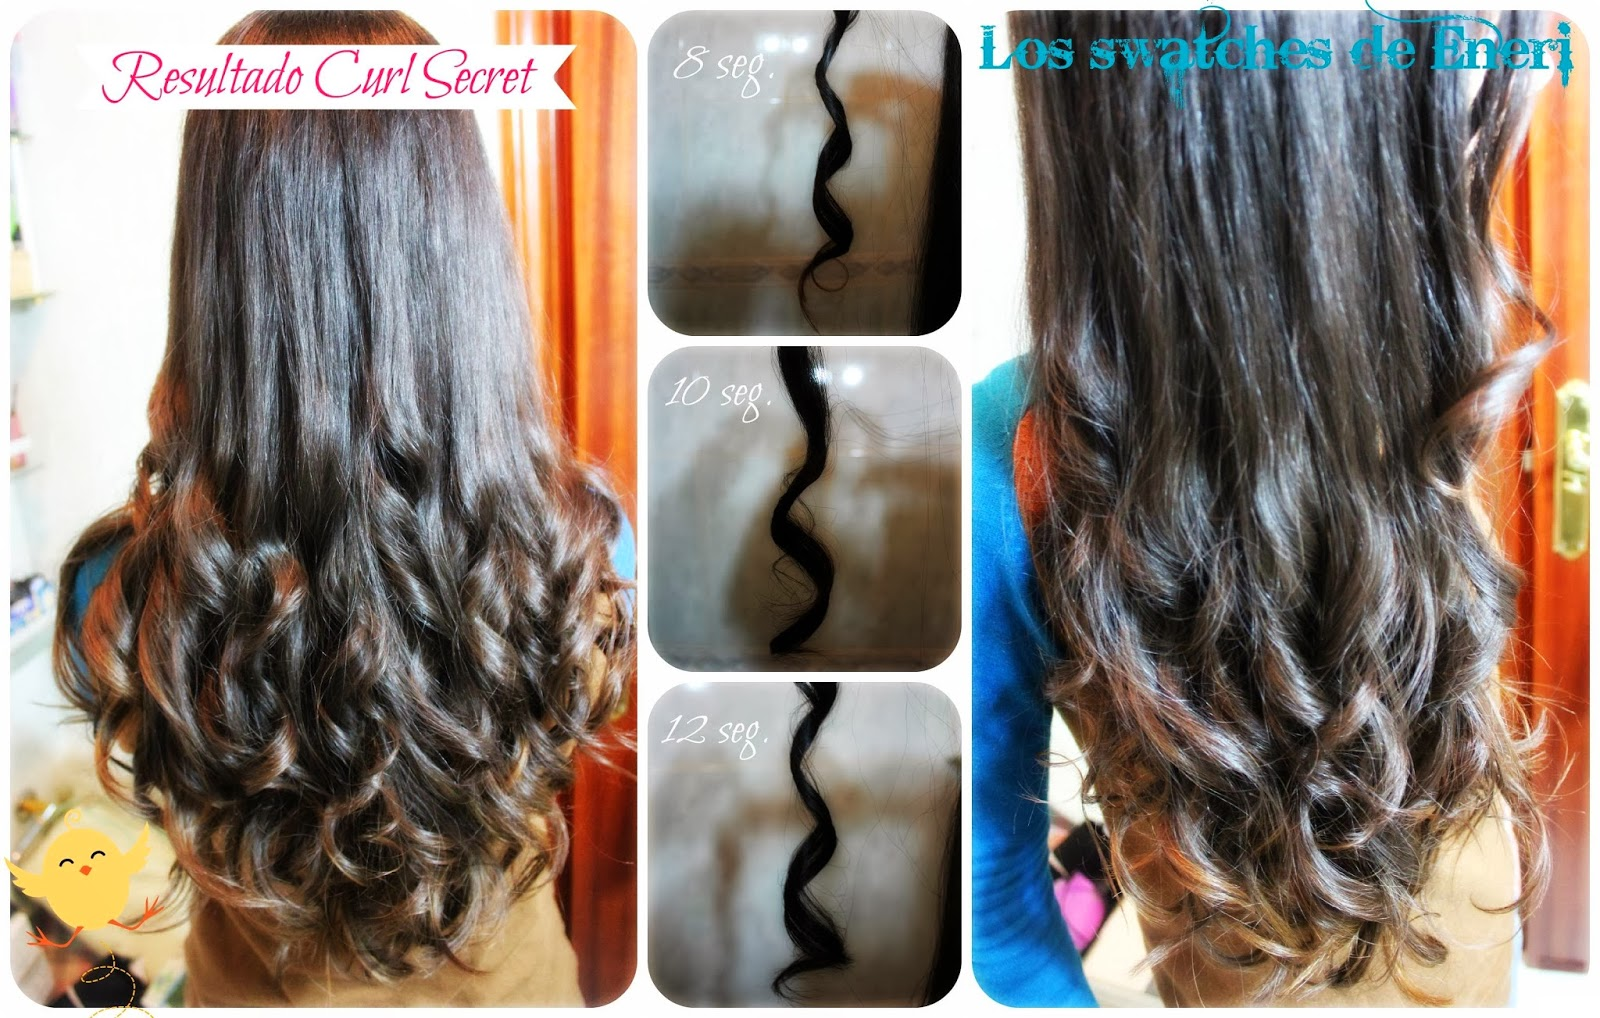 Curl Secret de babilyss